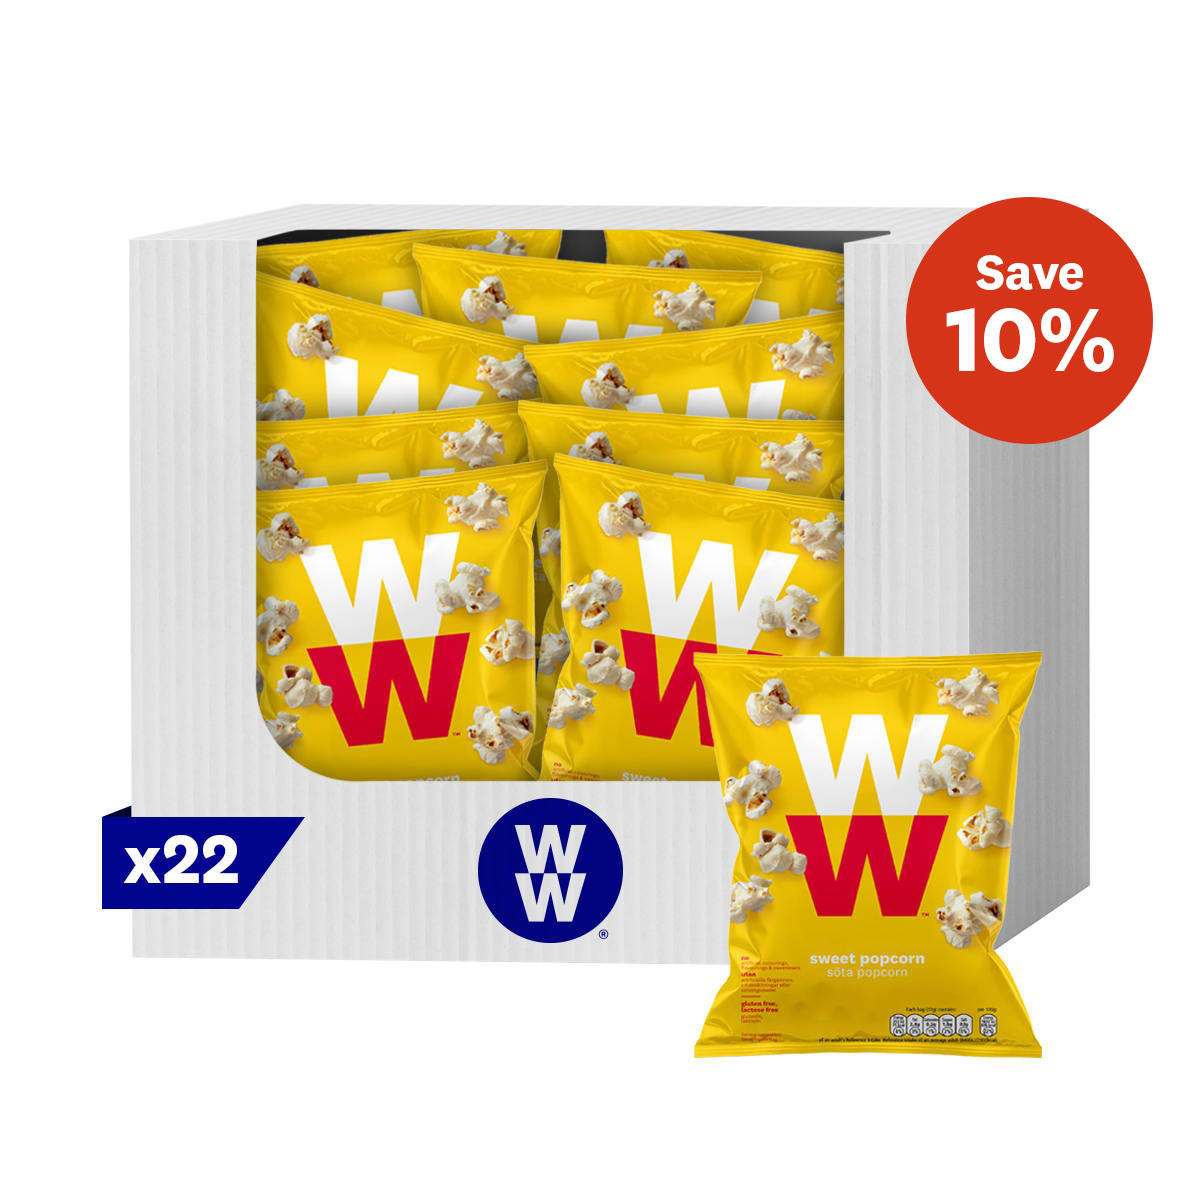 Box of 22, WW Sweet Popcorn, great alternative to higher SmartPoints options, 2 SmartPoints values per bag, suitable for vegetarians, gluten free